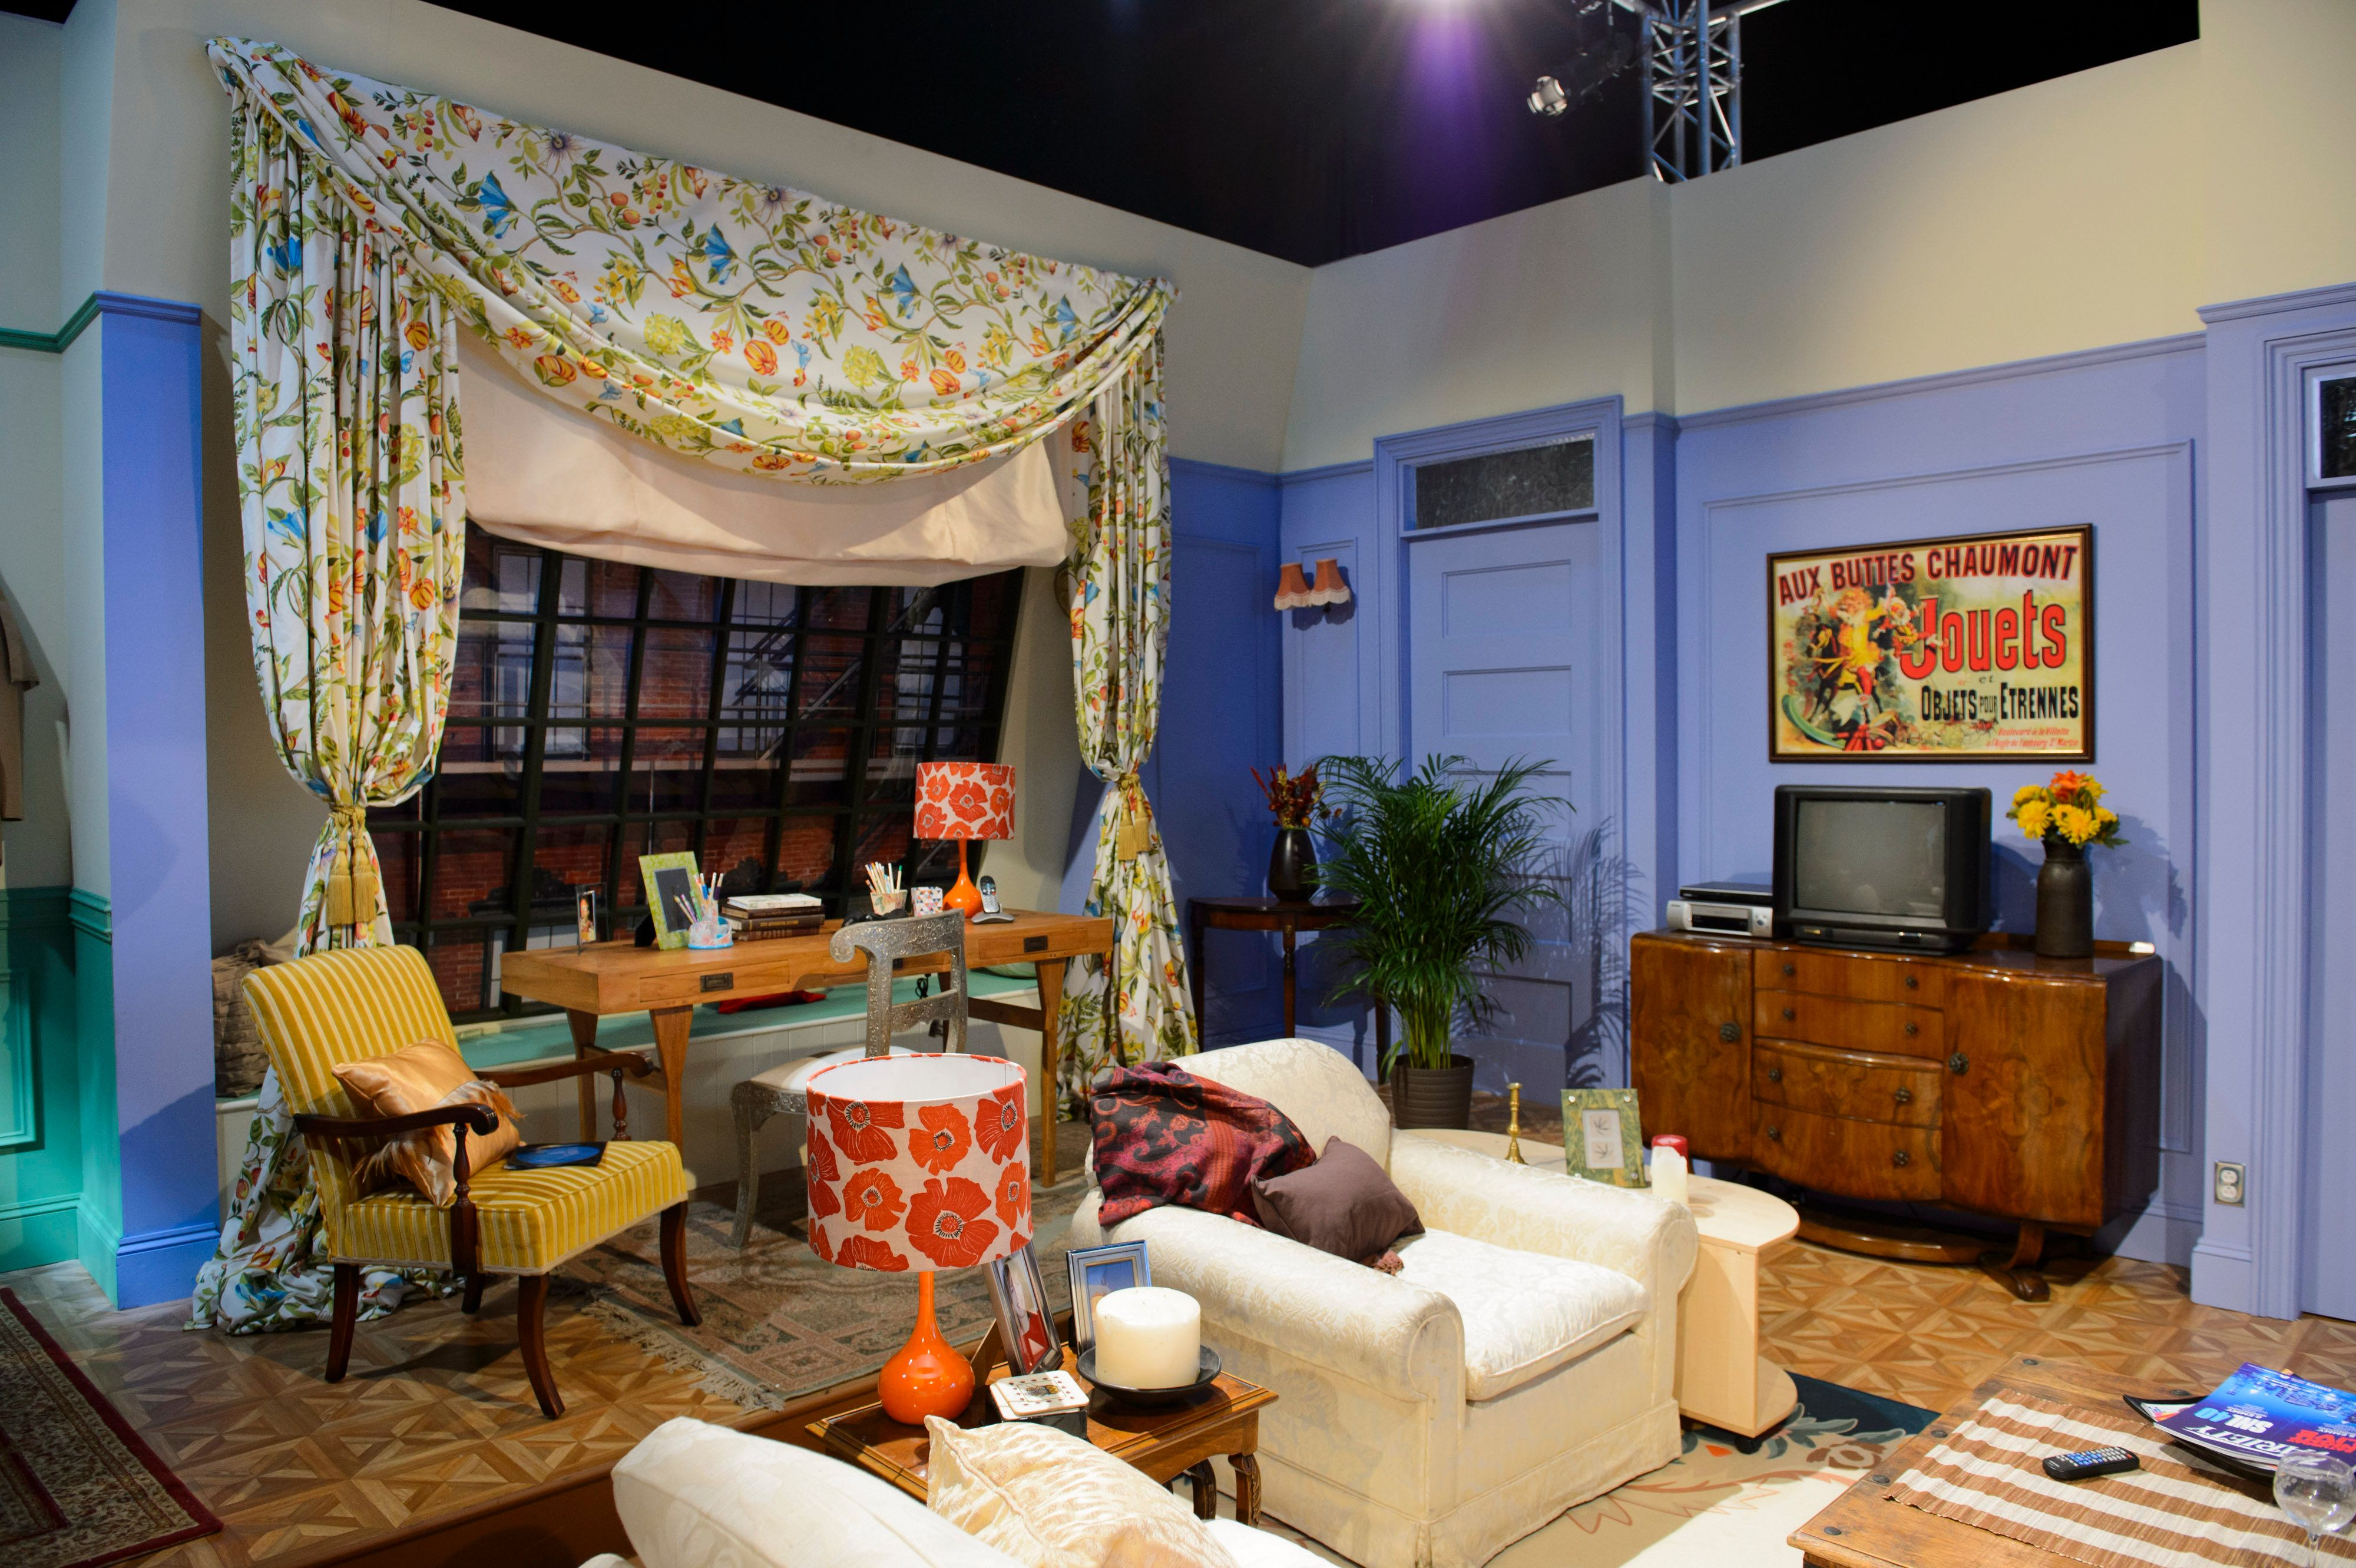 FriendsFest Is Back With Another UK Tour, And This Time There's Even More To